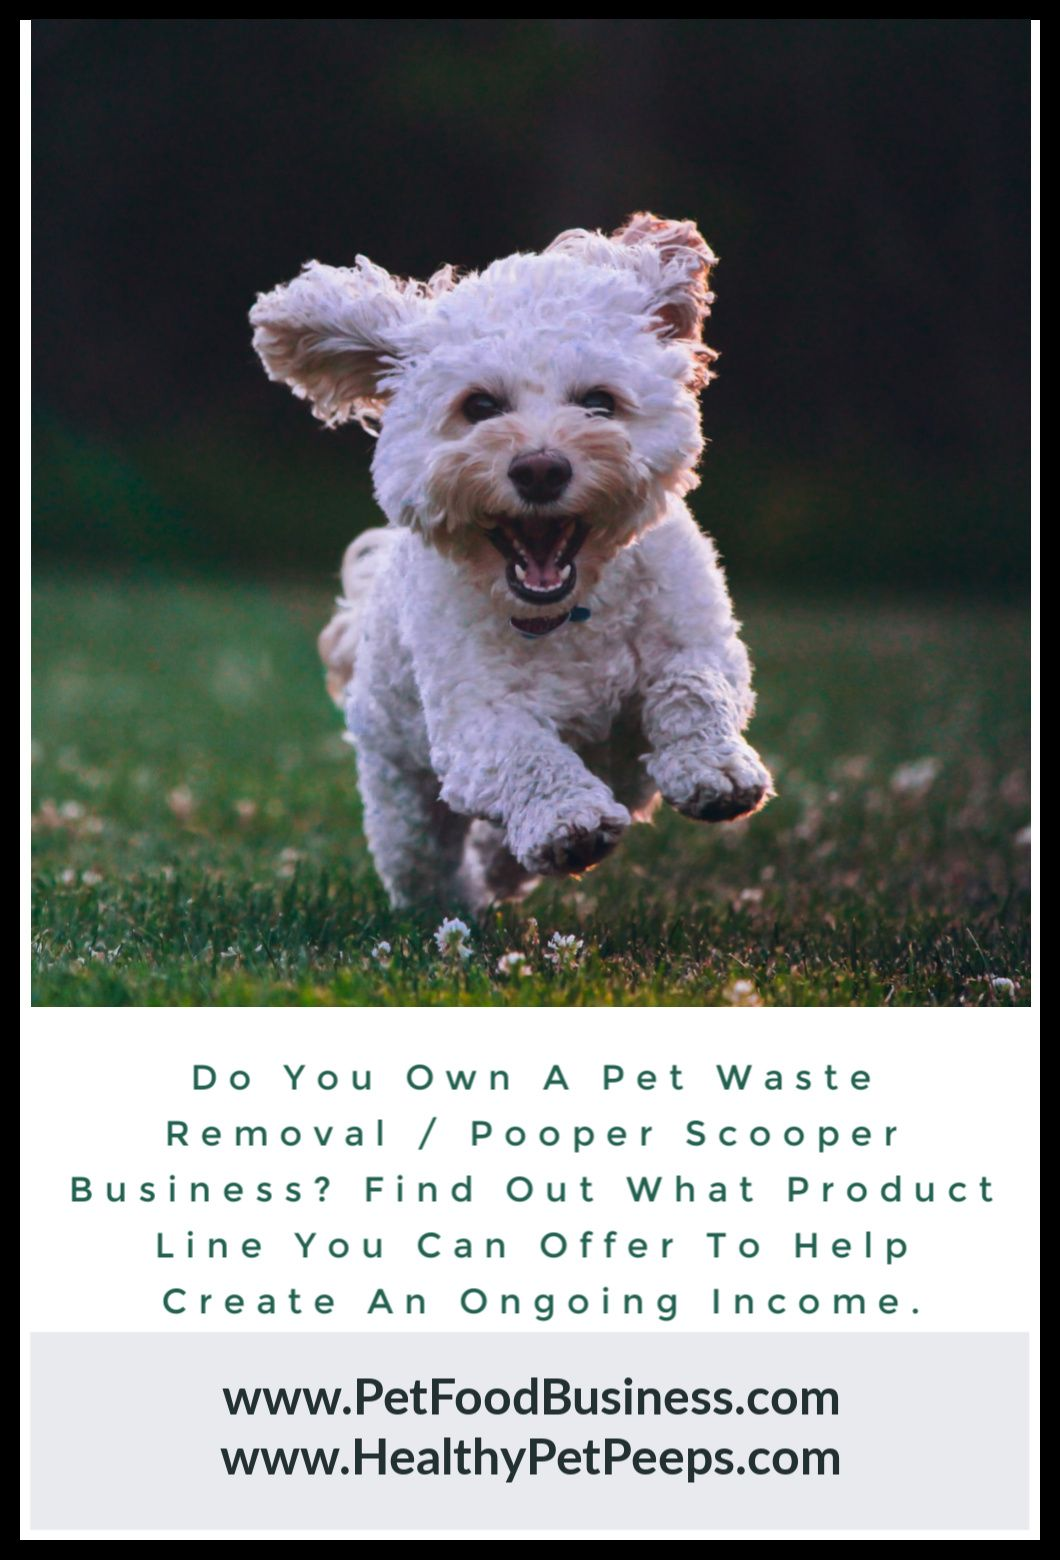 Do You Own A Pet Waste Removal / Pooper Scooper Business